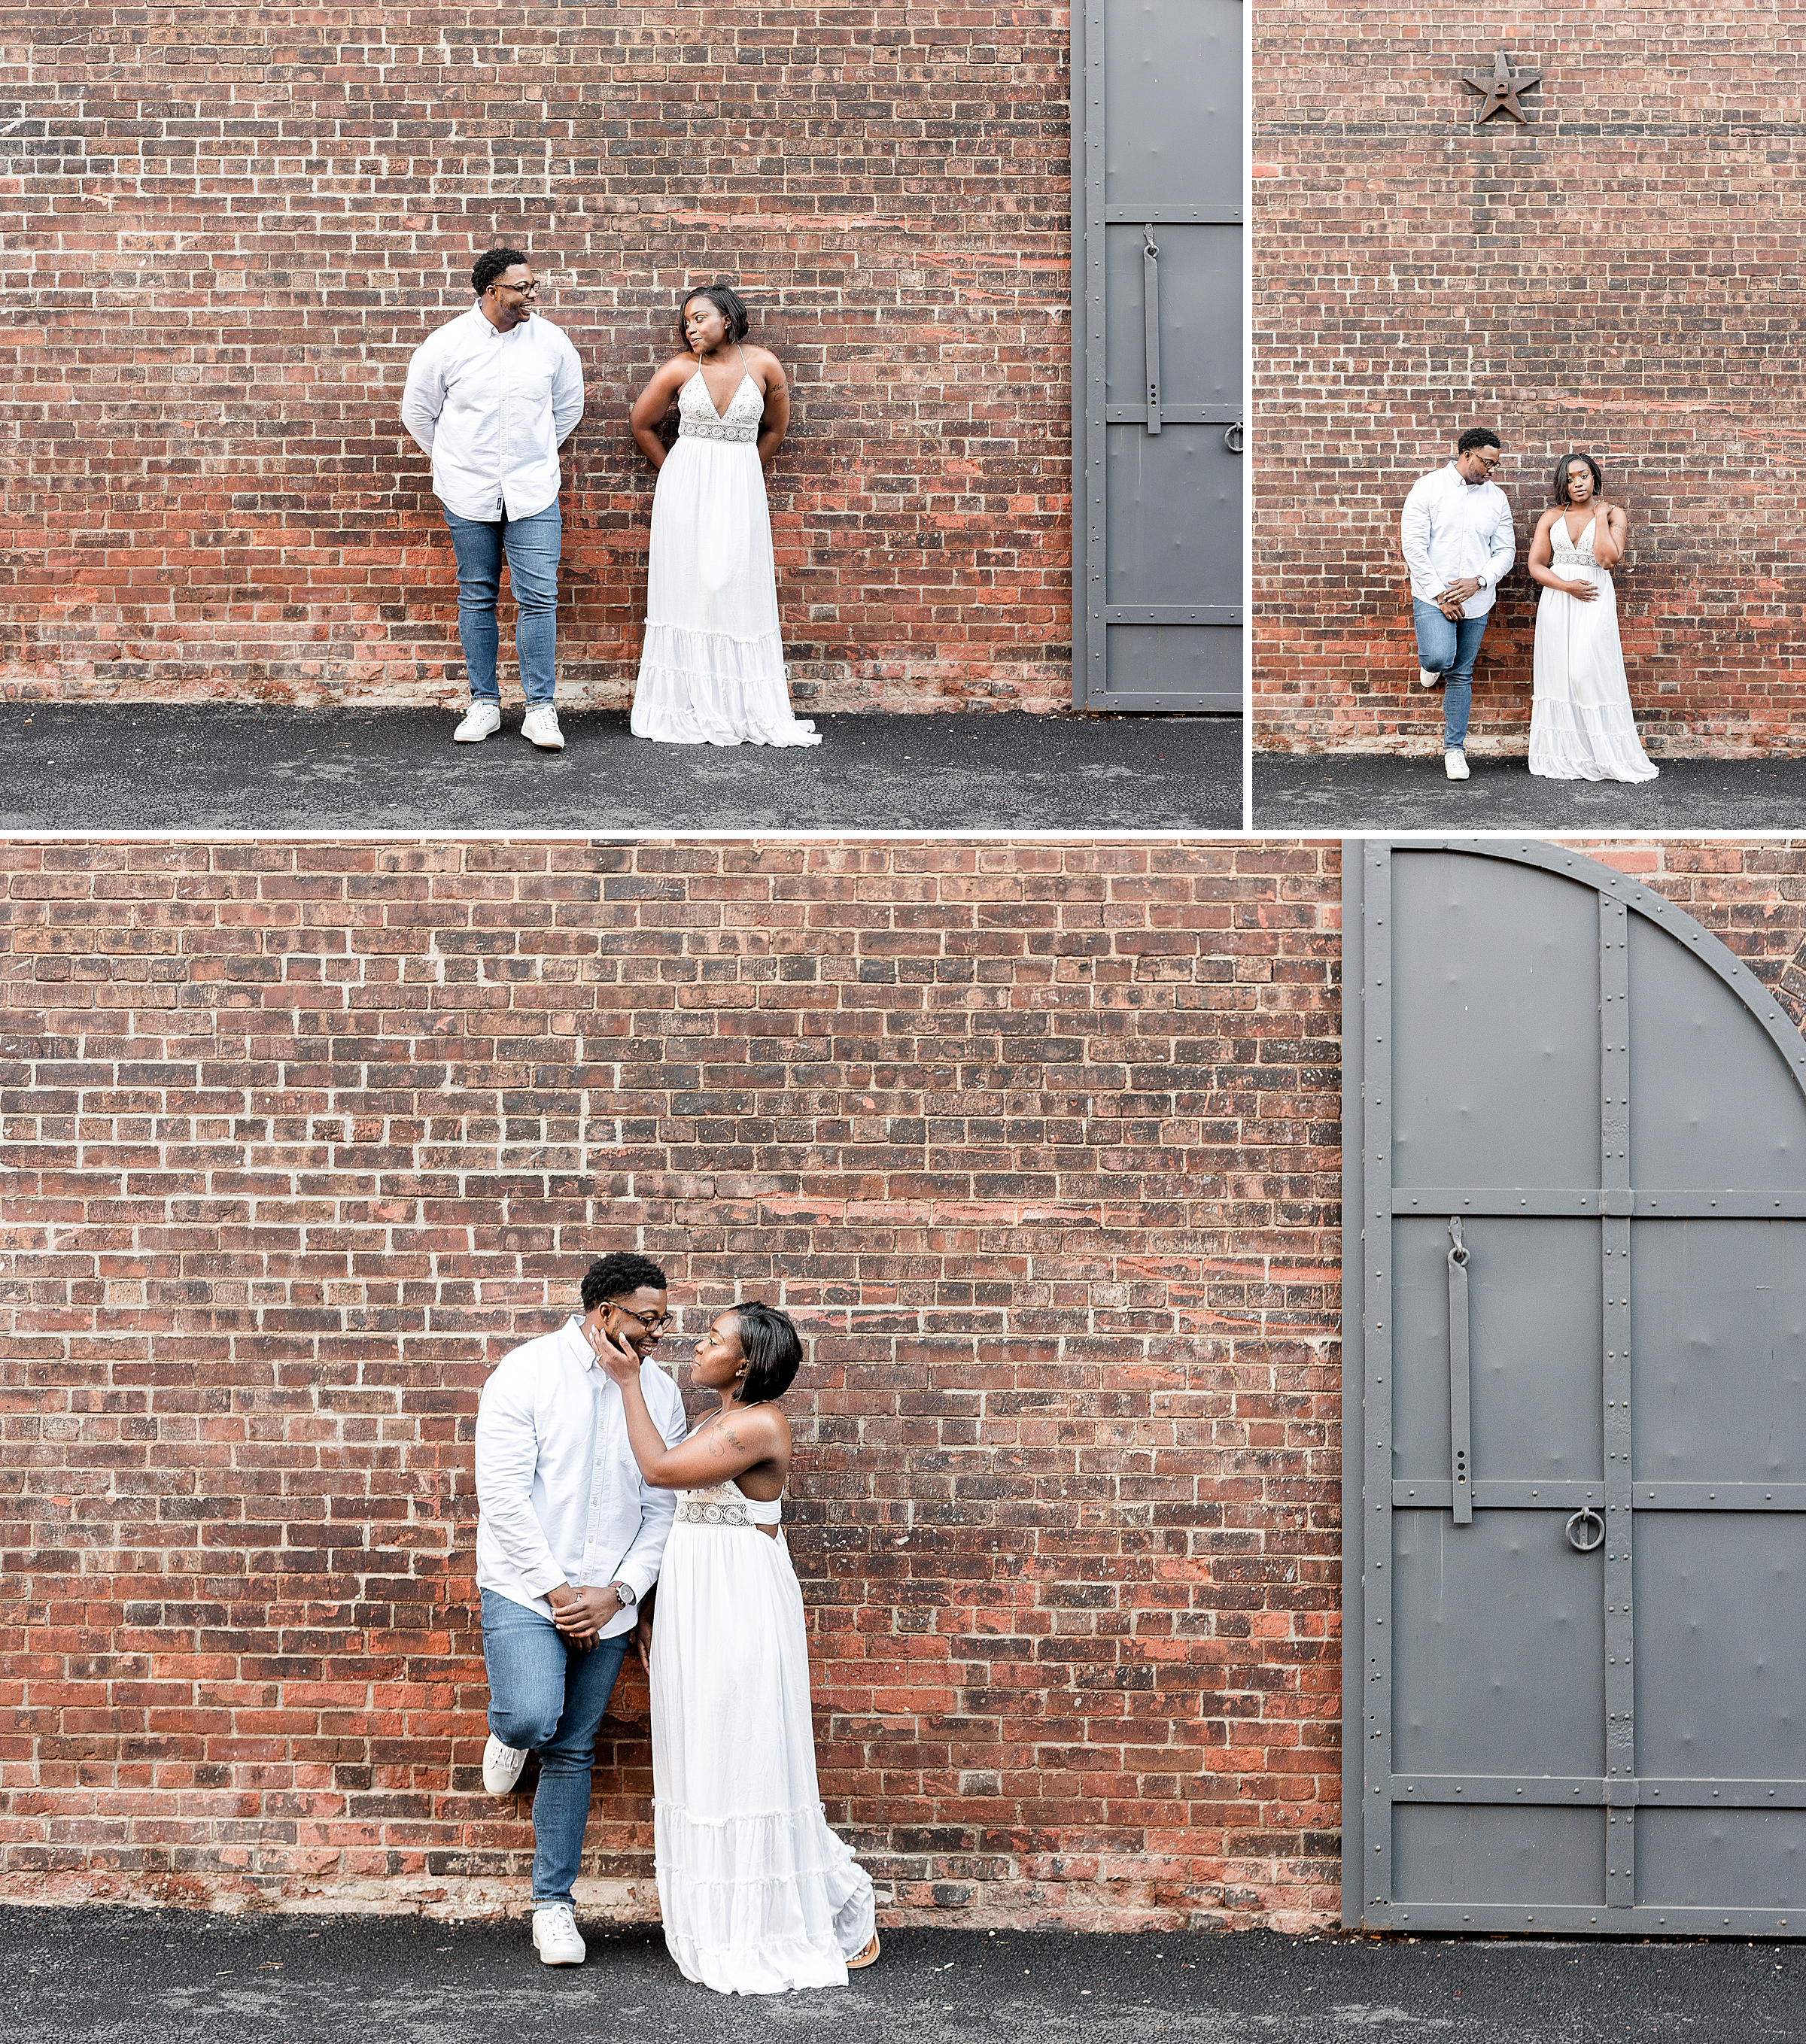 Couple standing side by side against a brick wall during a proposal shoot in DUMBO Brooklyn NYC